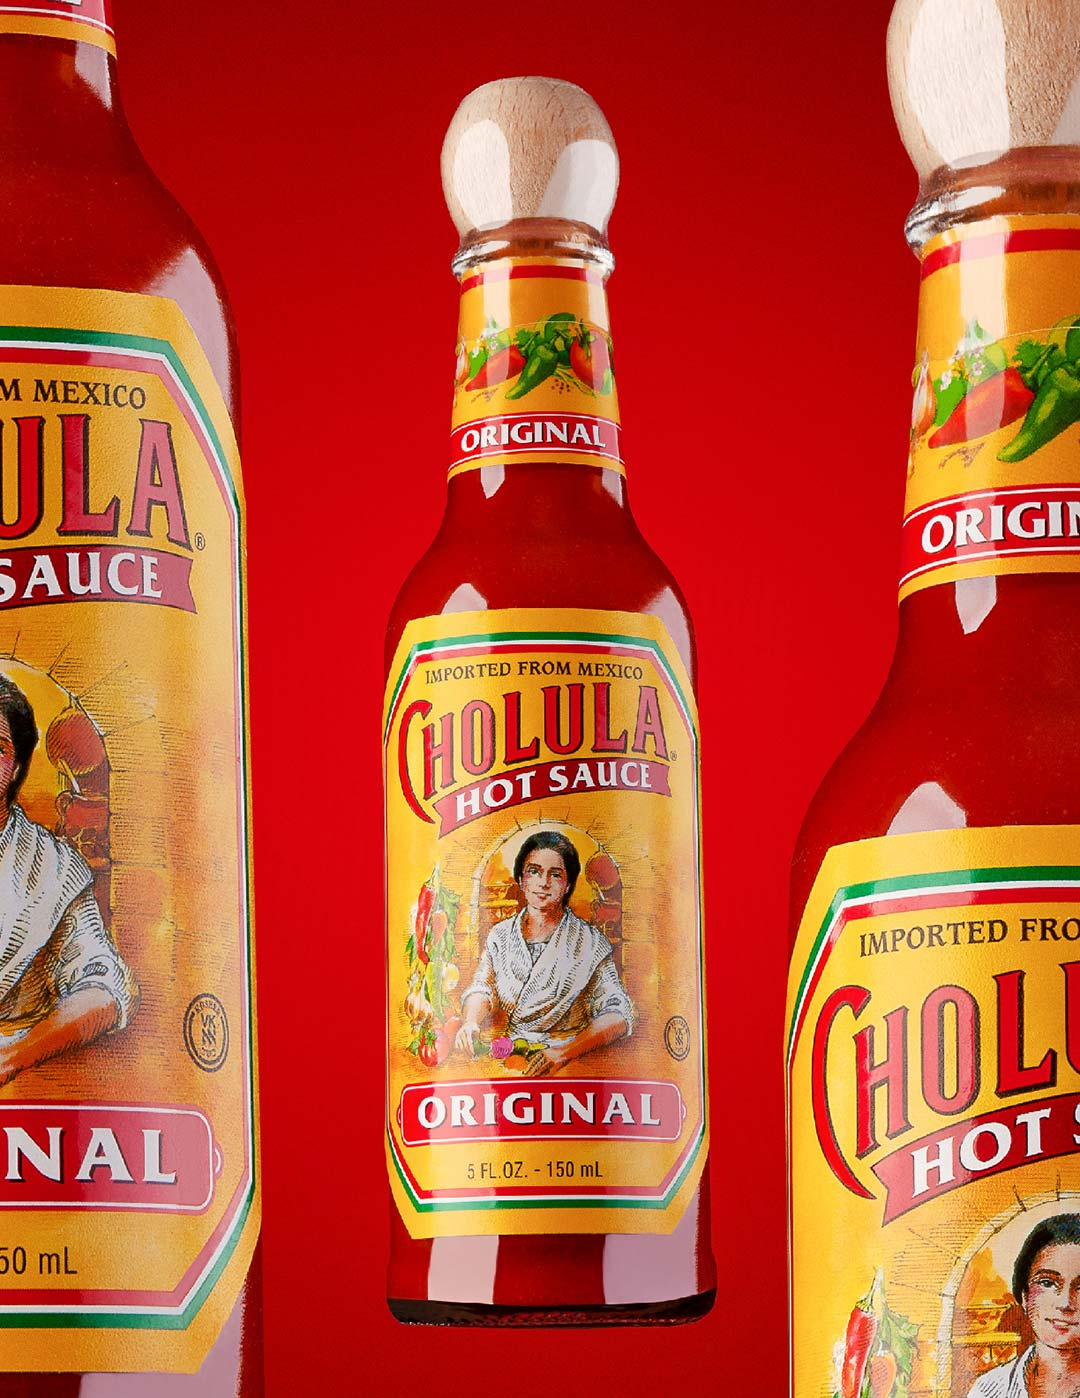 Cholula Hot Sauce spec shoot by Greywood Photography